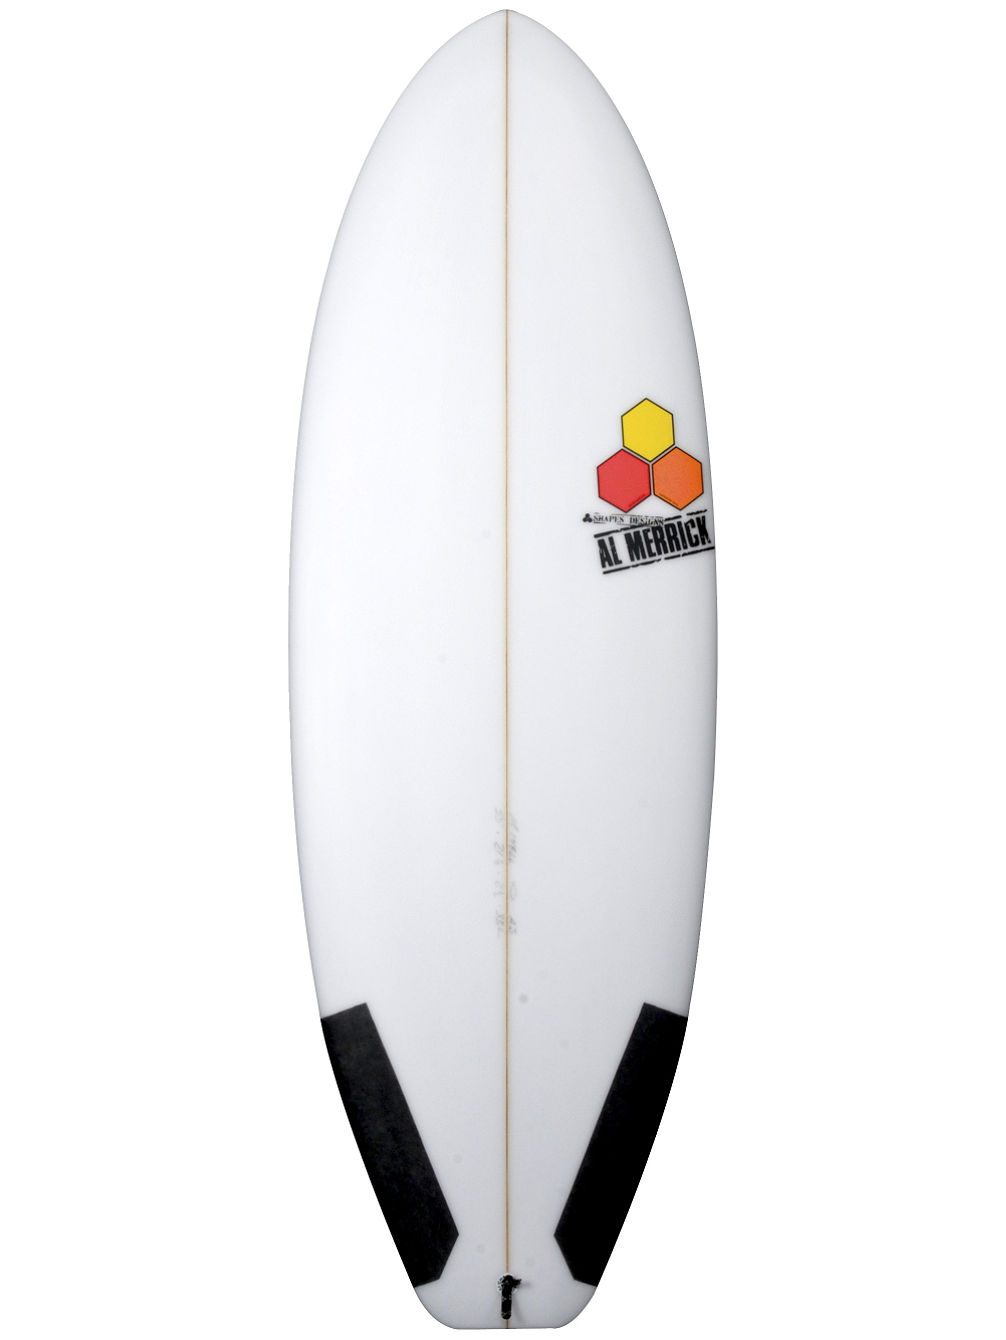 "Av Joe 5'9"" Surfboard"